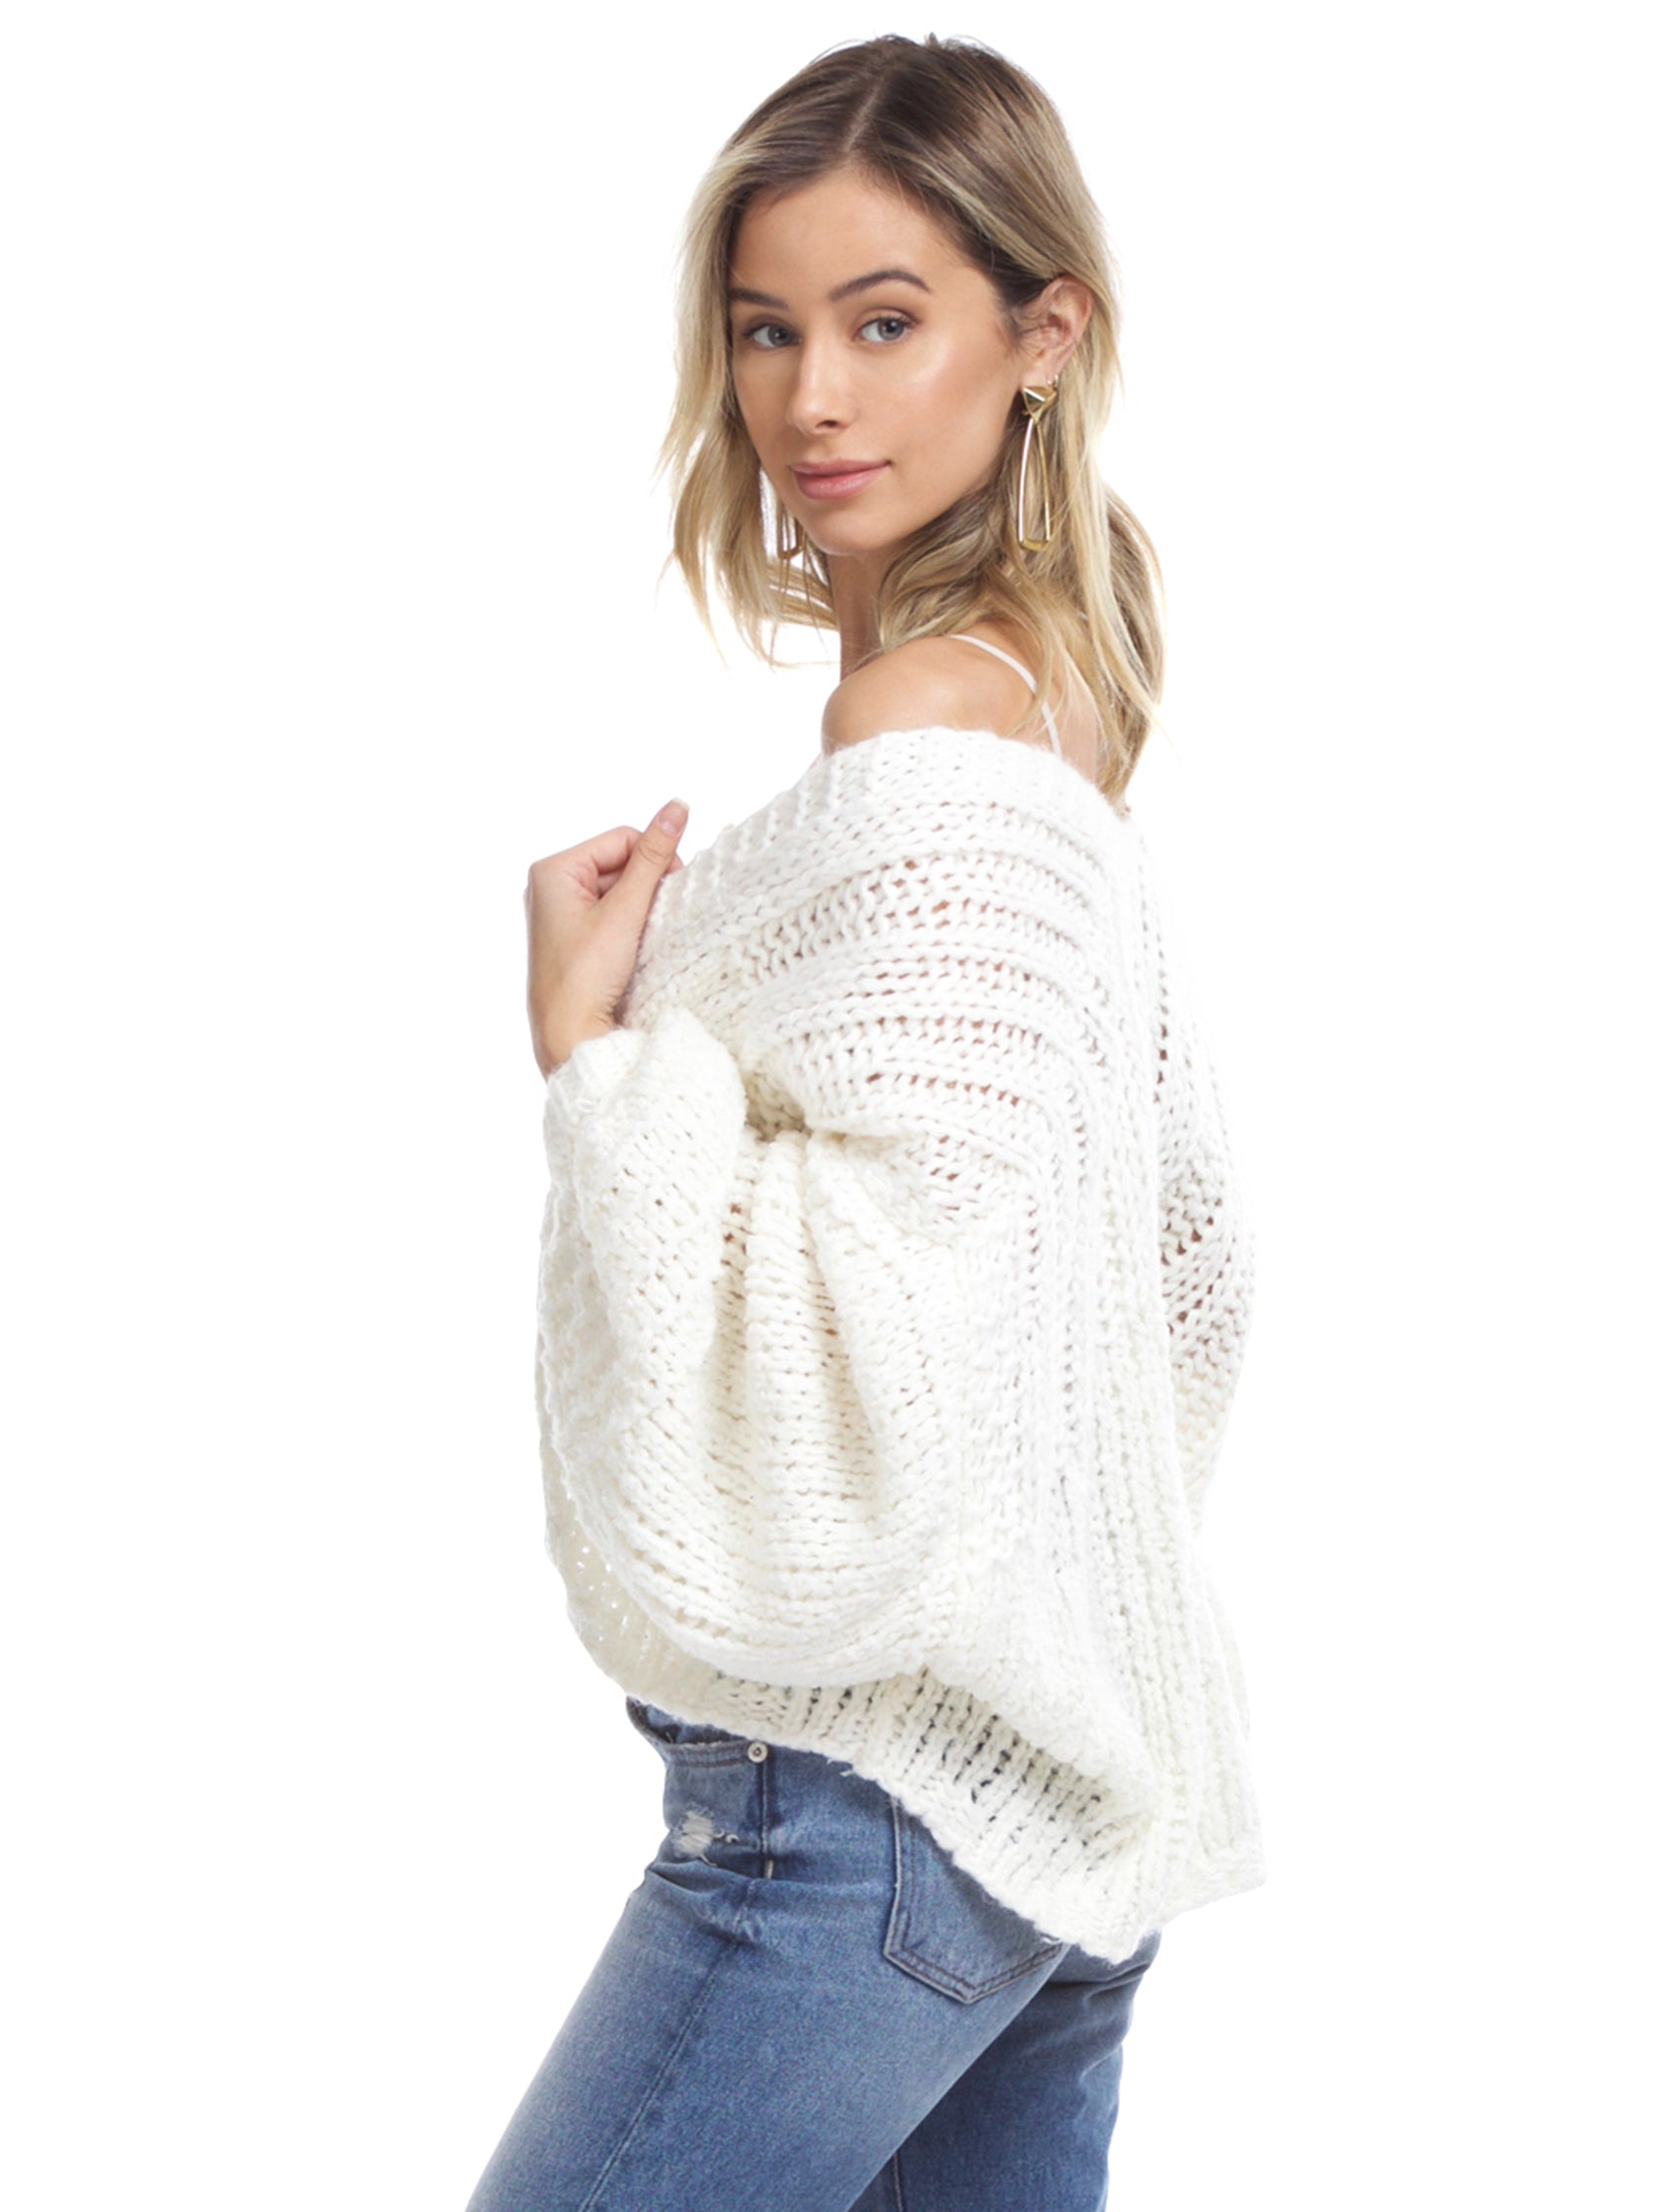 Women wearing a cardigan rental from Free People called Chamomile Cardi